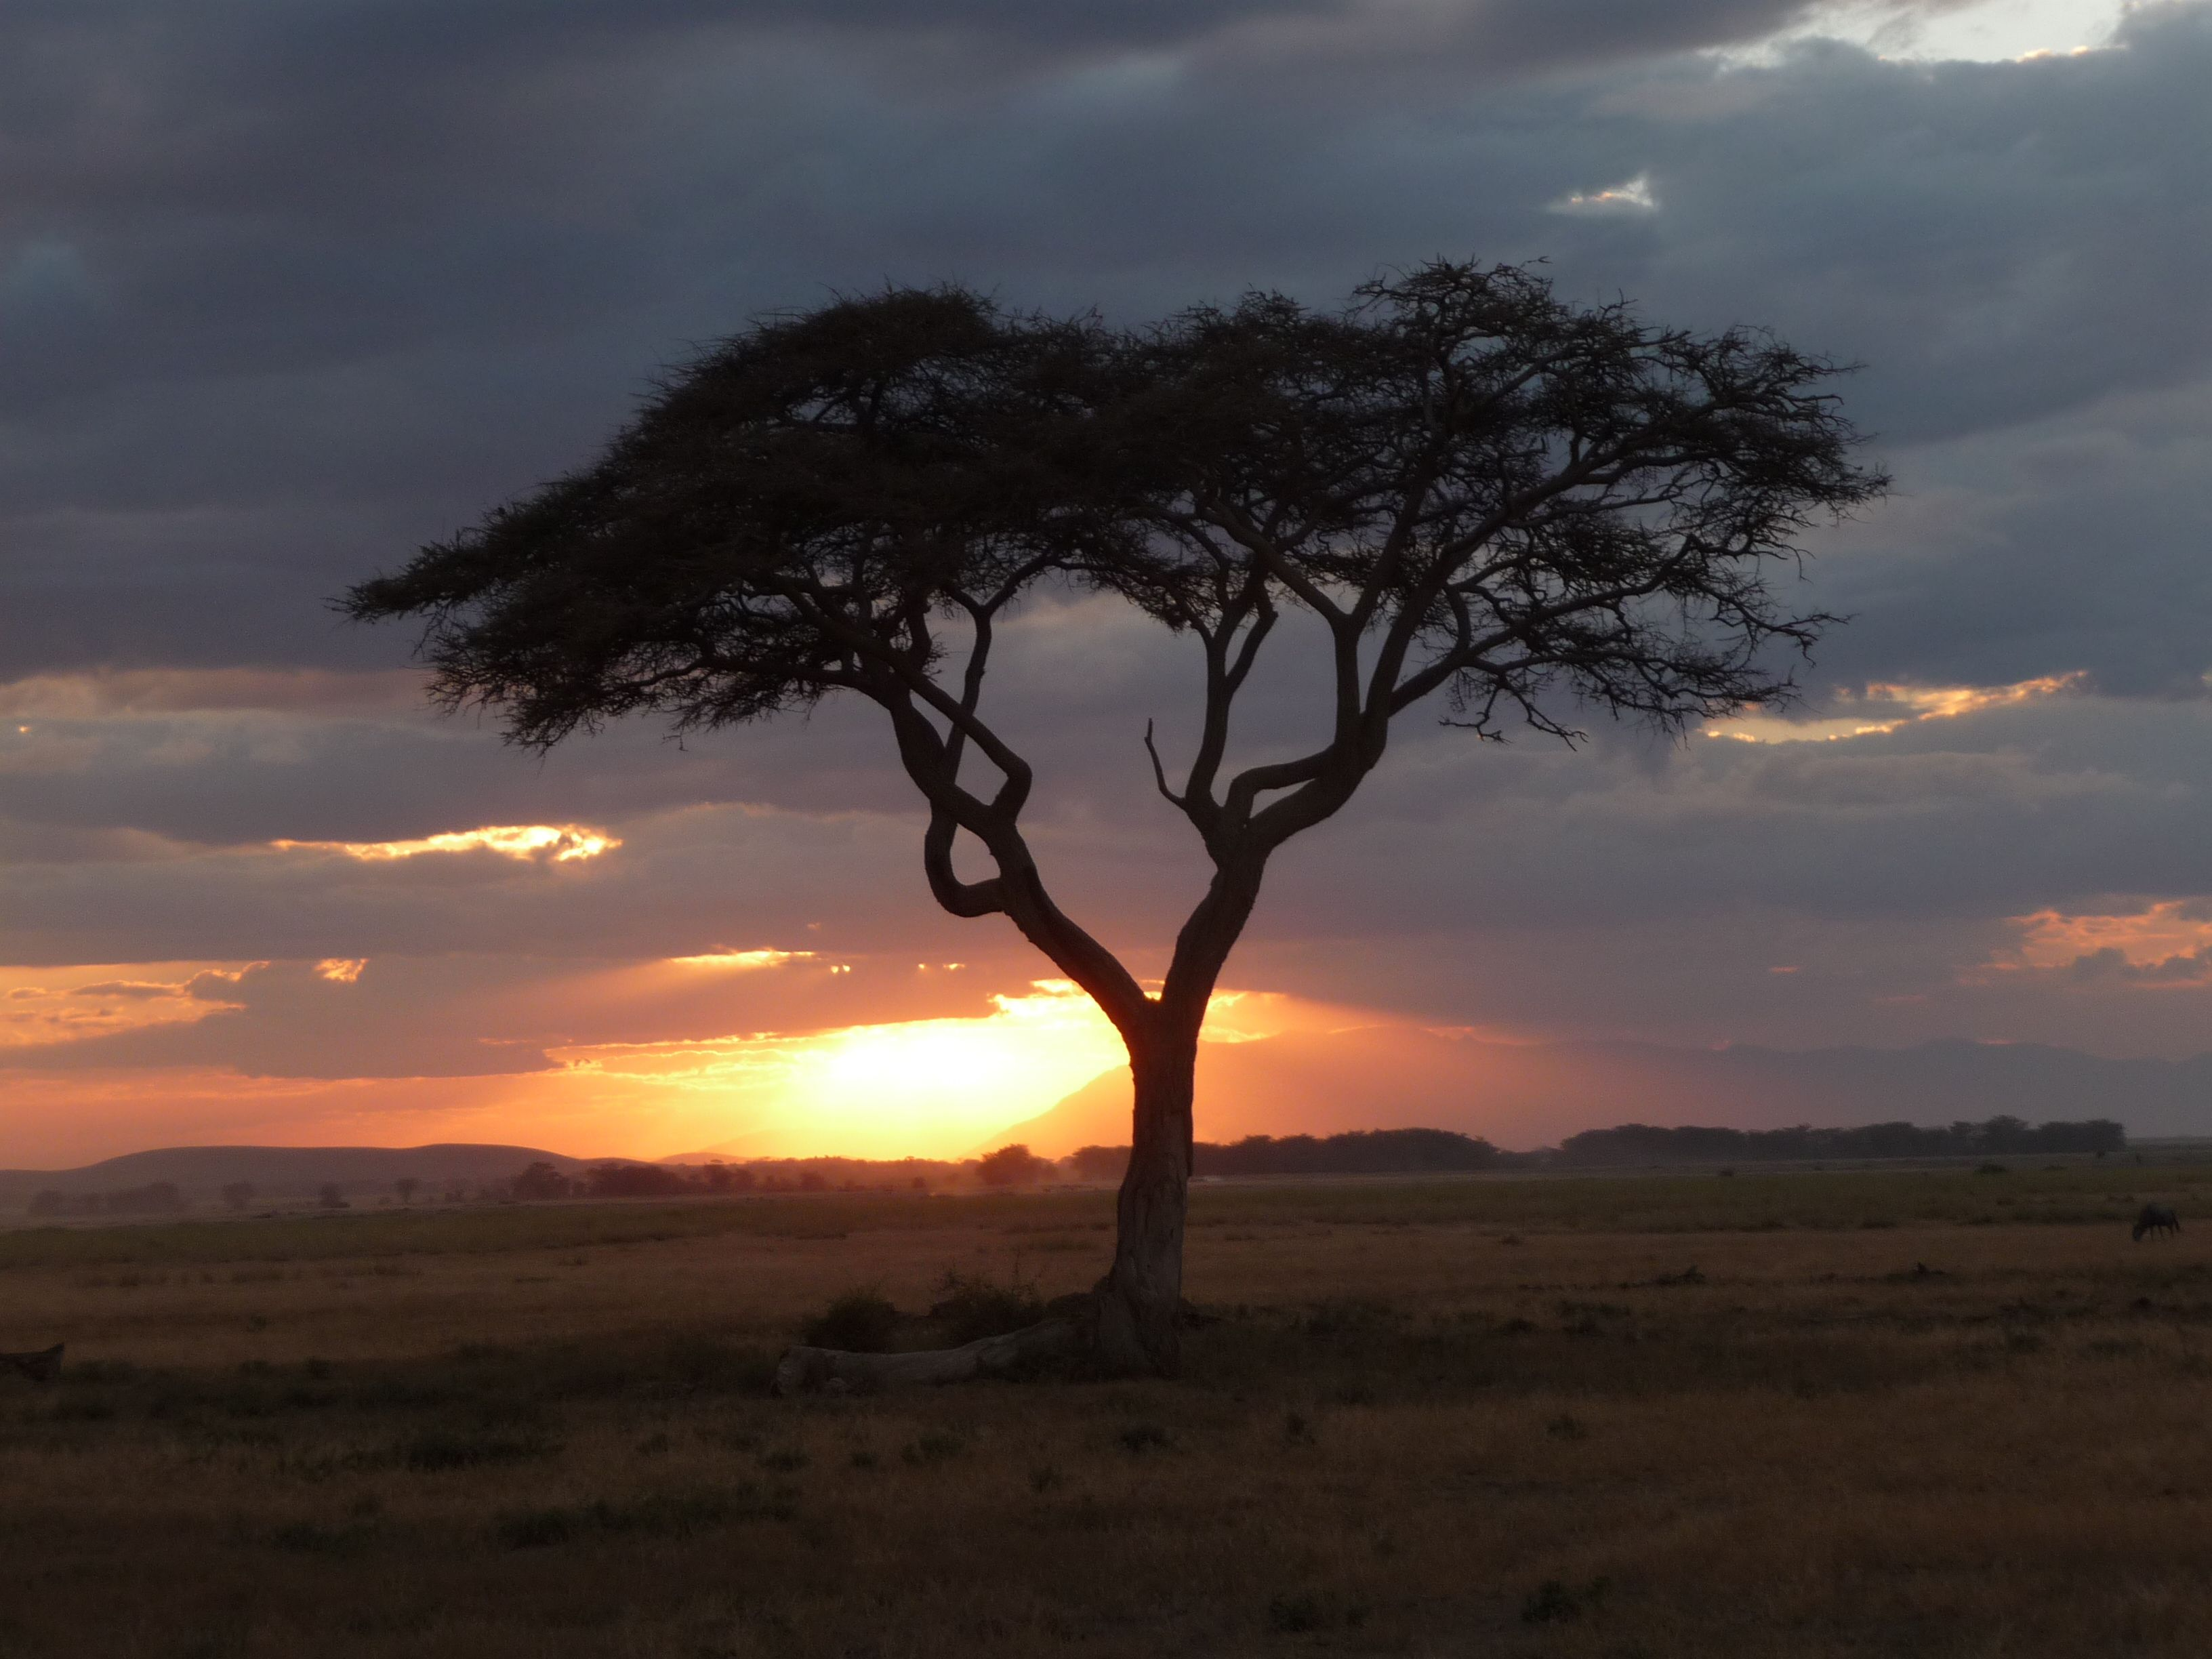 Kenya is beautiful and you can see Kenya's big five, whats not to love.